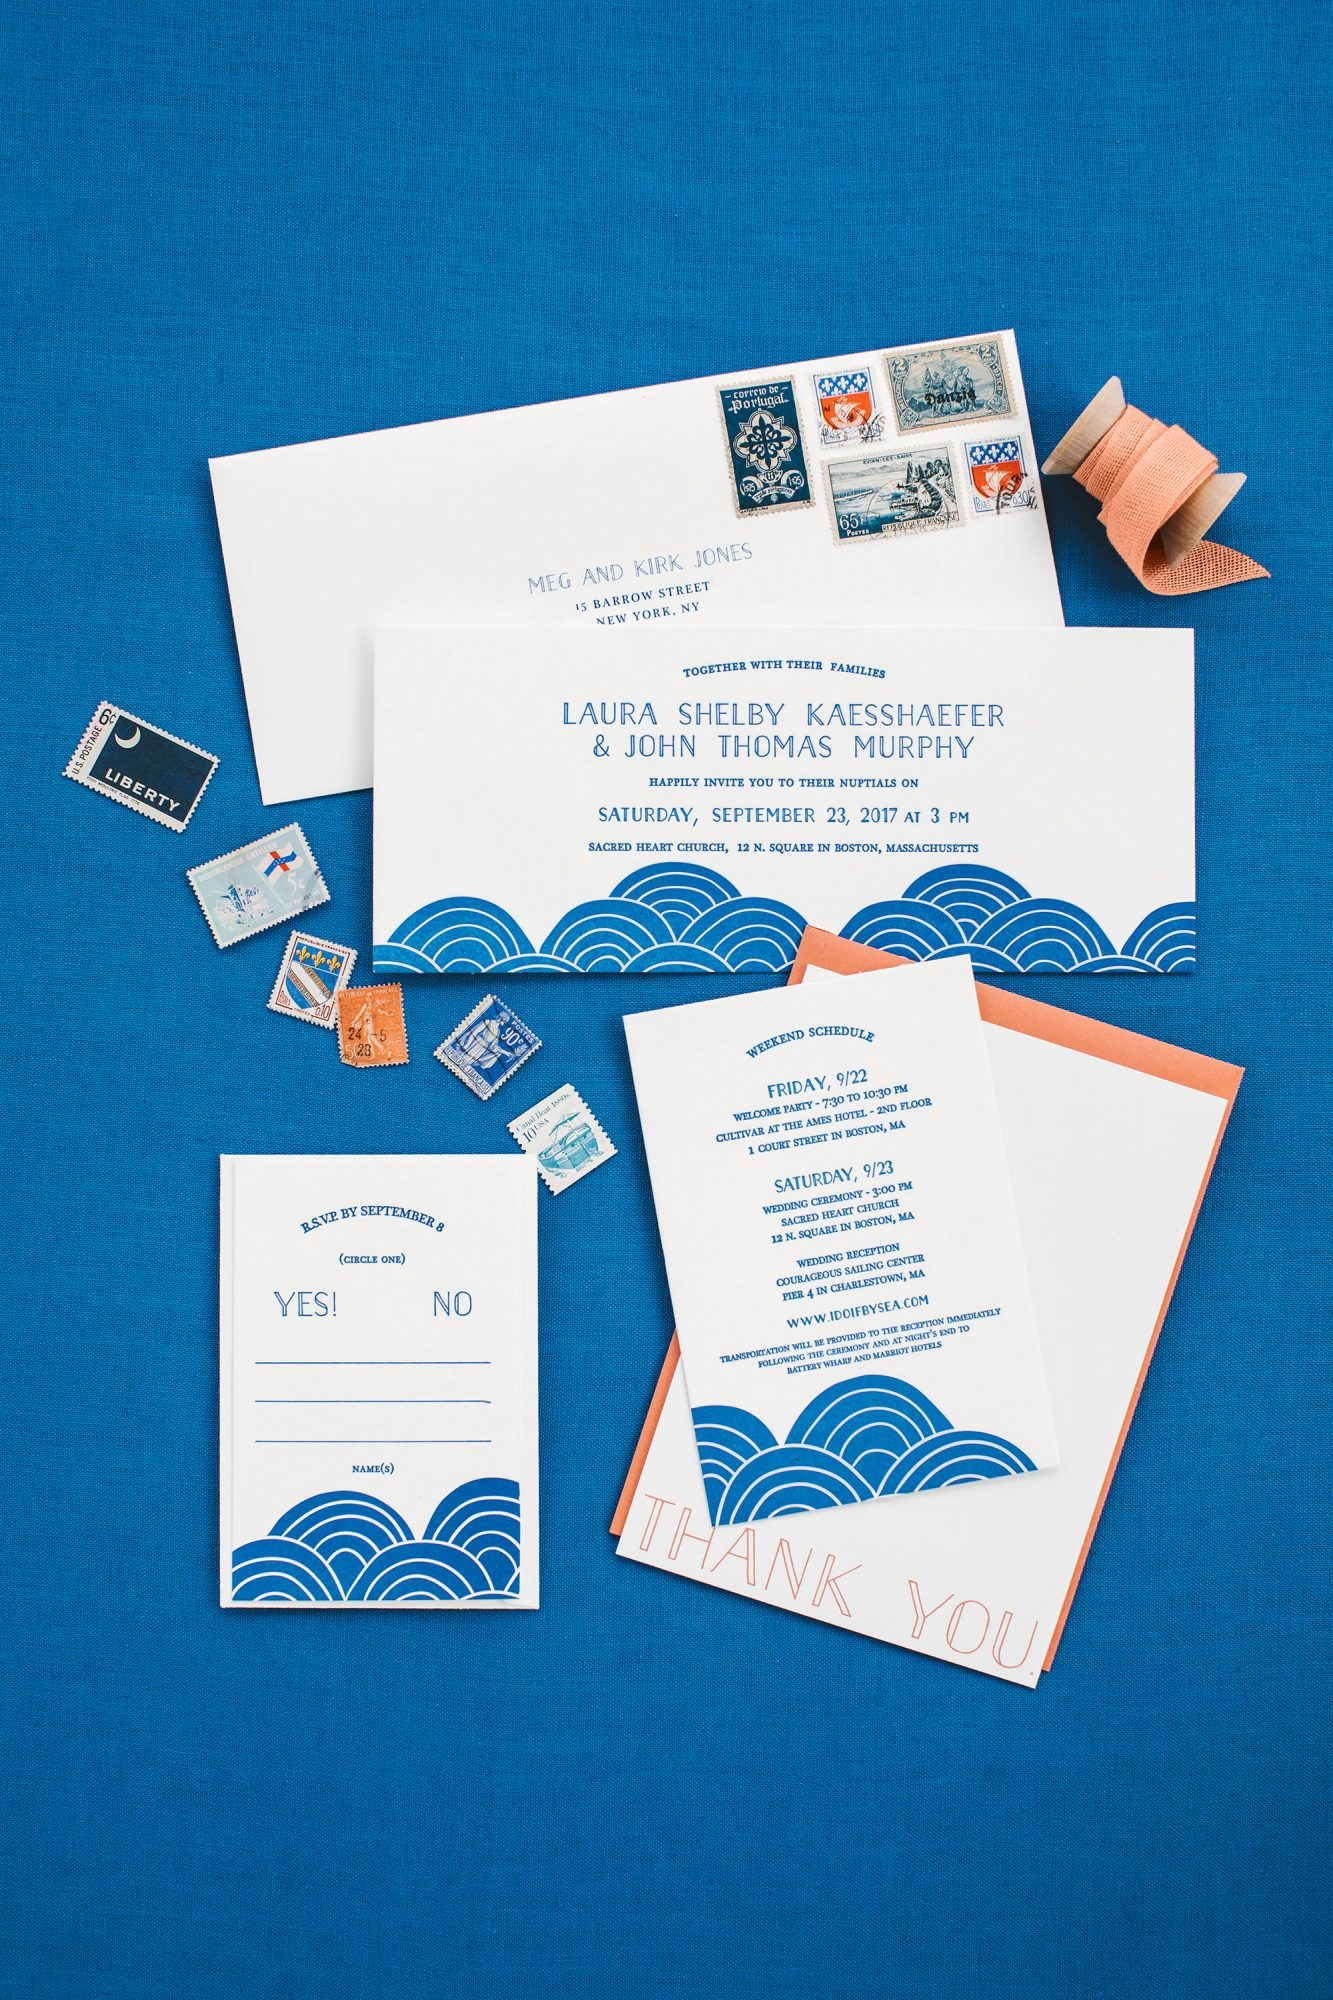 Black Lamb Studio designed these contemporary invitations with a modern pattern of rounded blue waves.